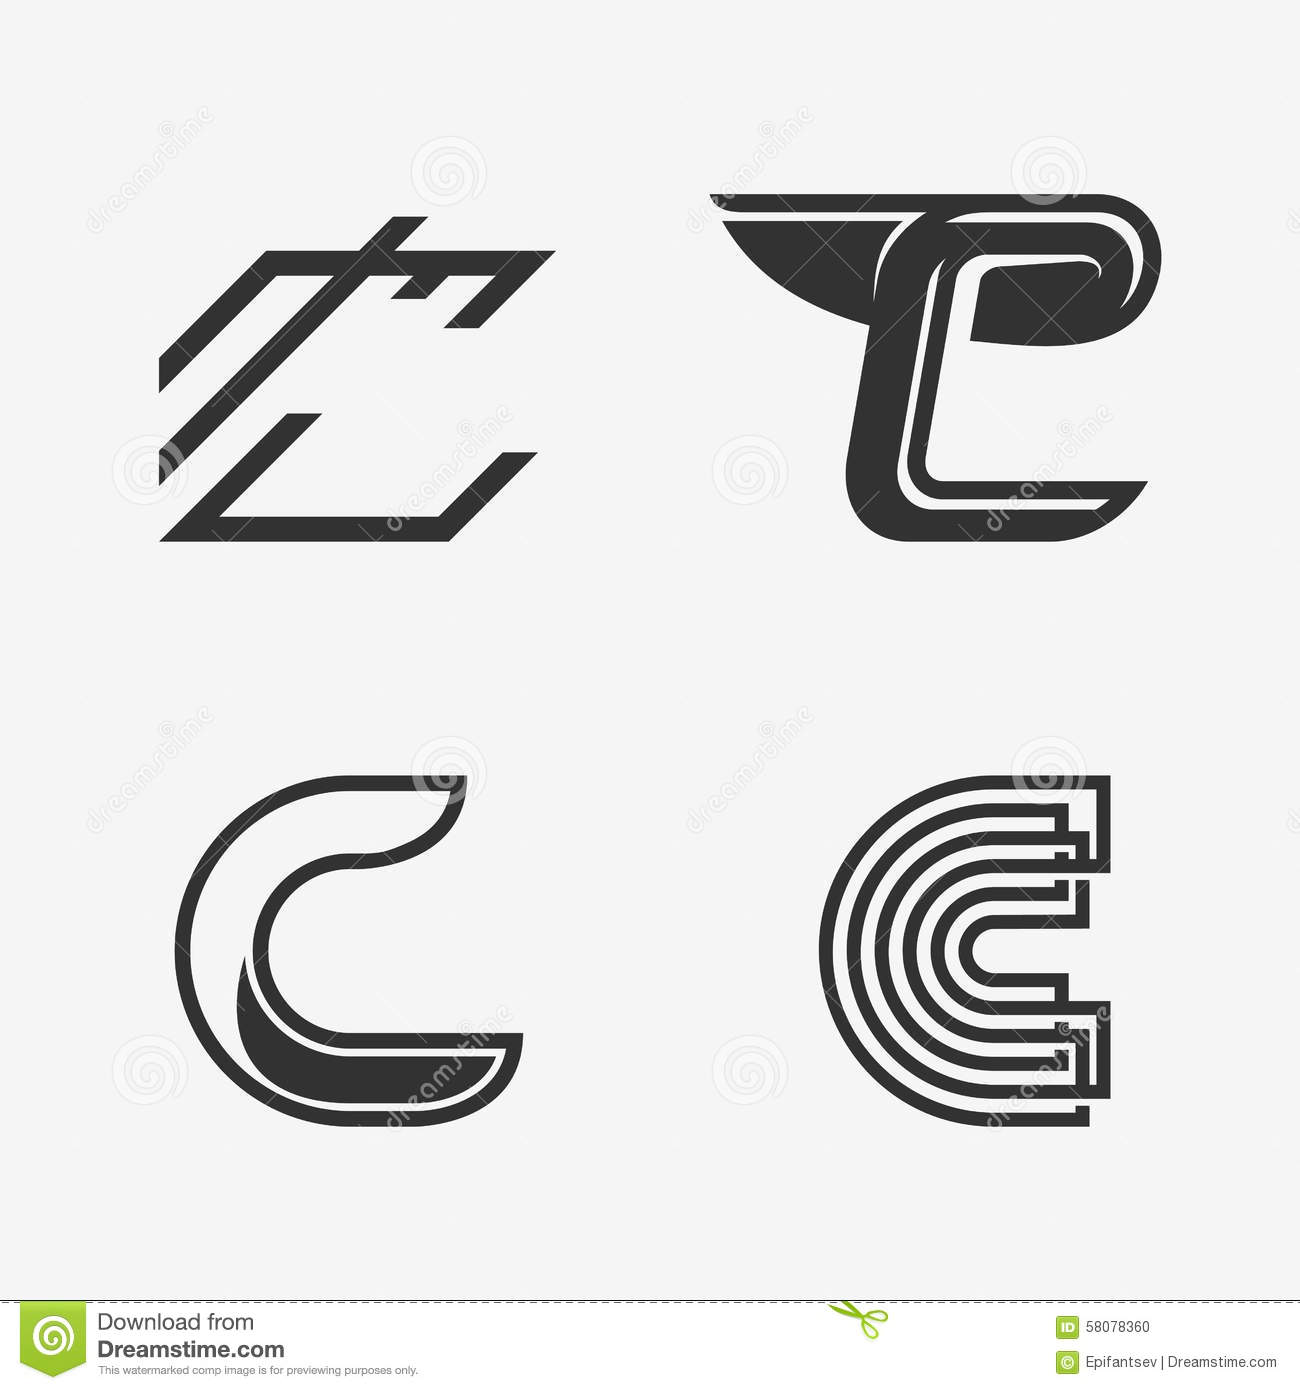 the set of letter c sign logo icon design template